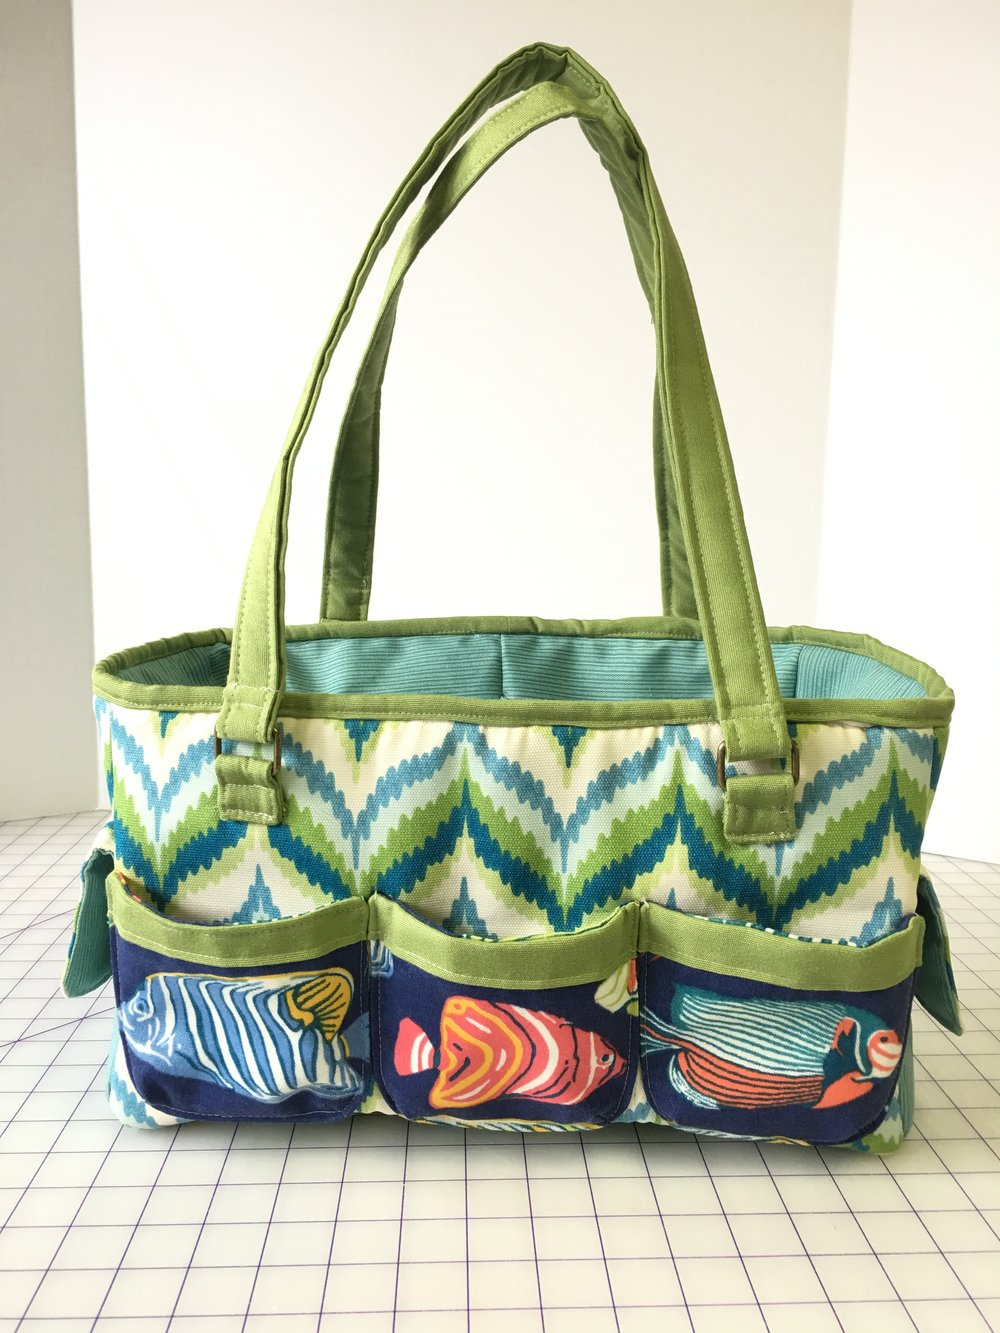 Completed Oslo Craft/Garden Bag in Outdoor fabrics